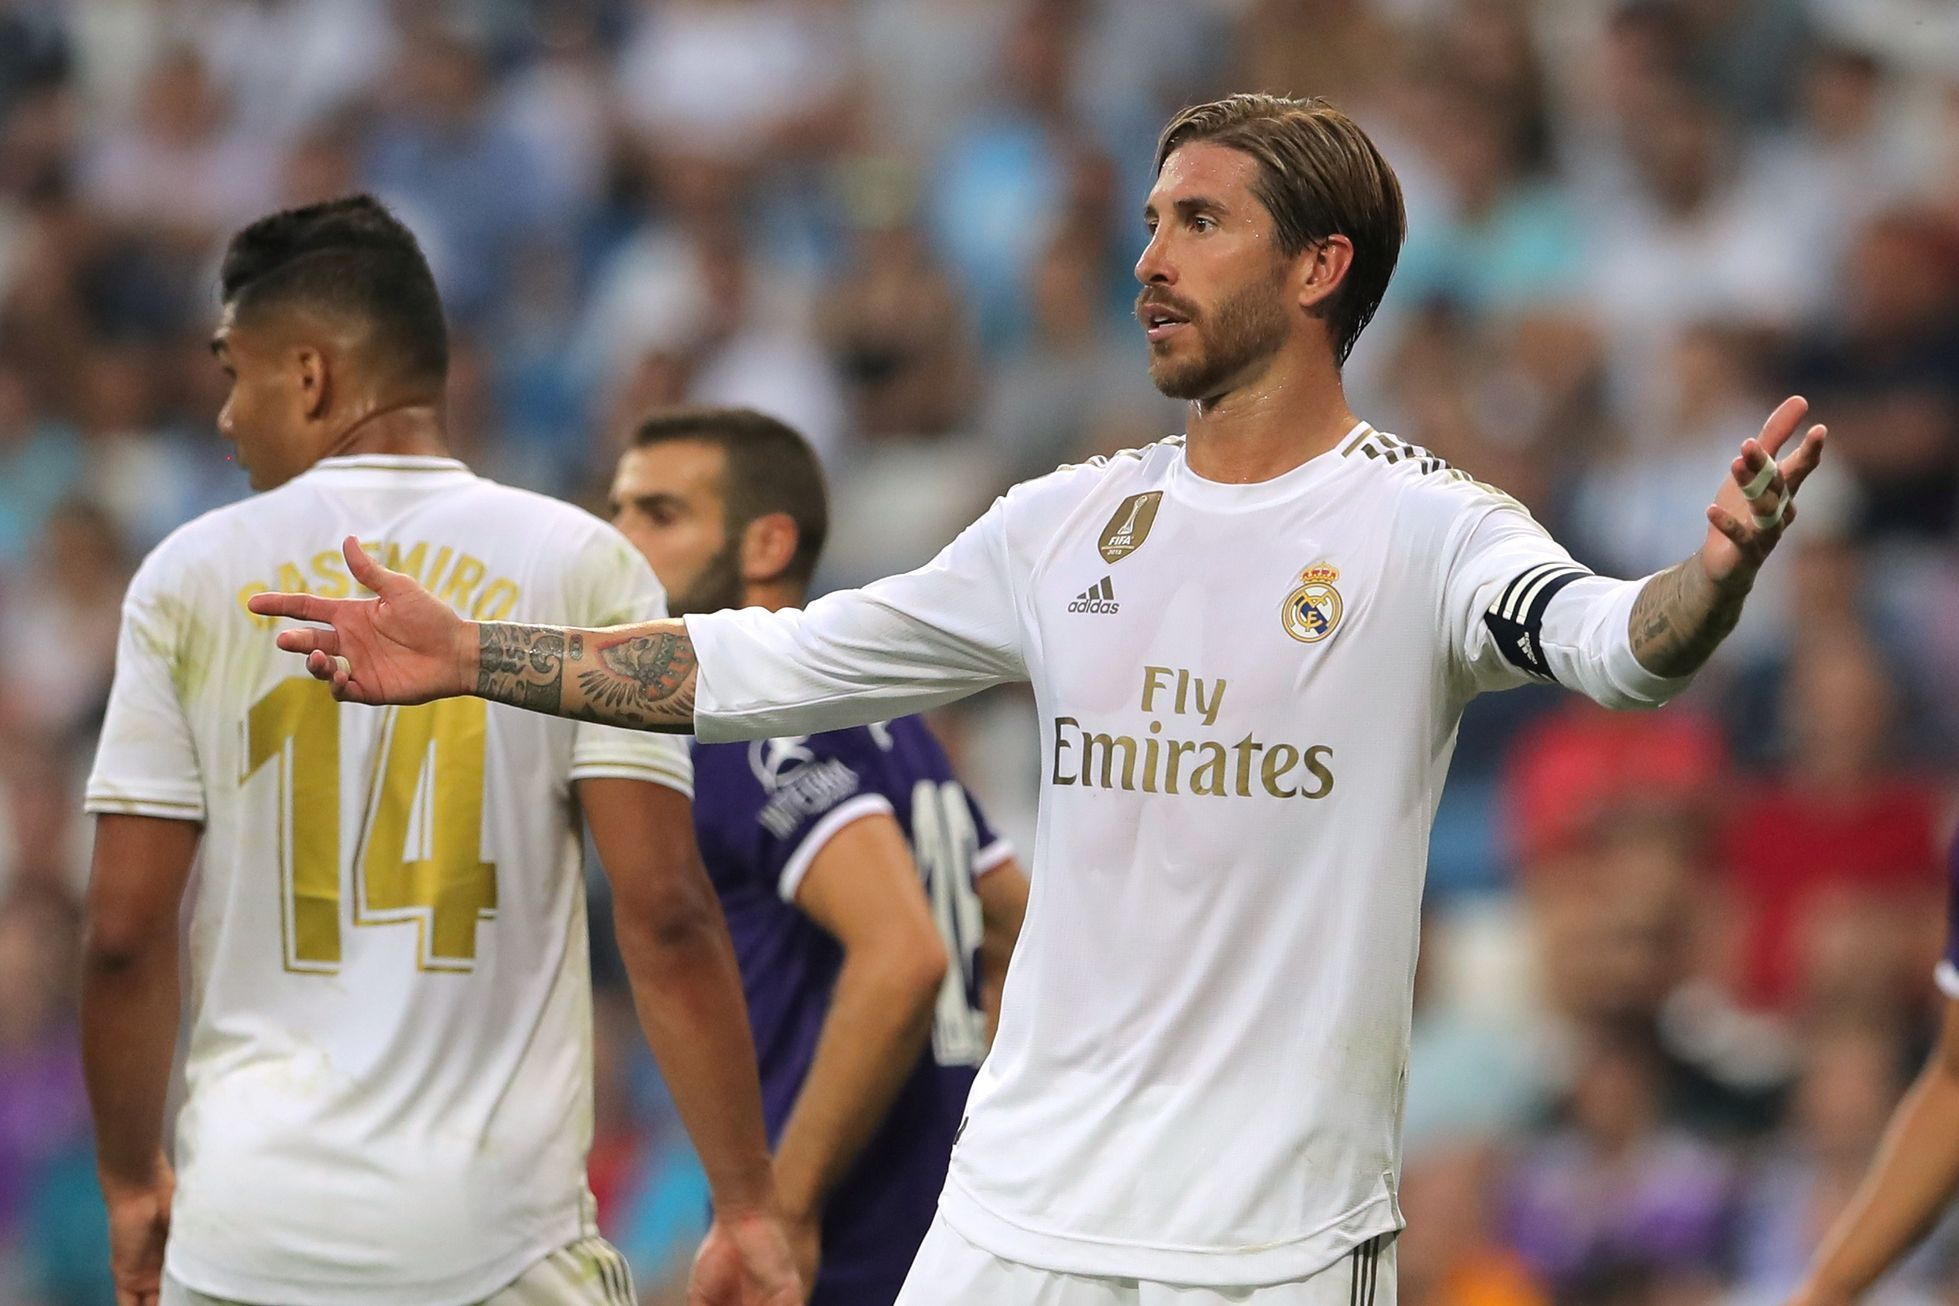 Sergio Ramos (Real Madrid vs. Valladolid)